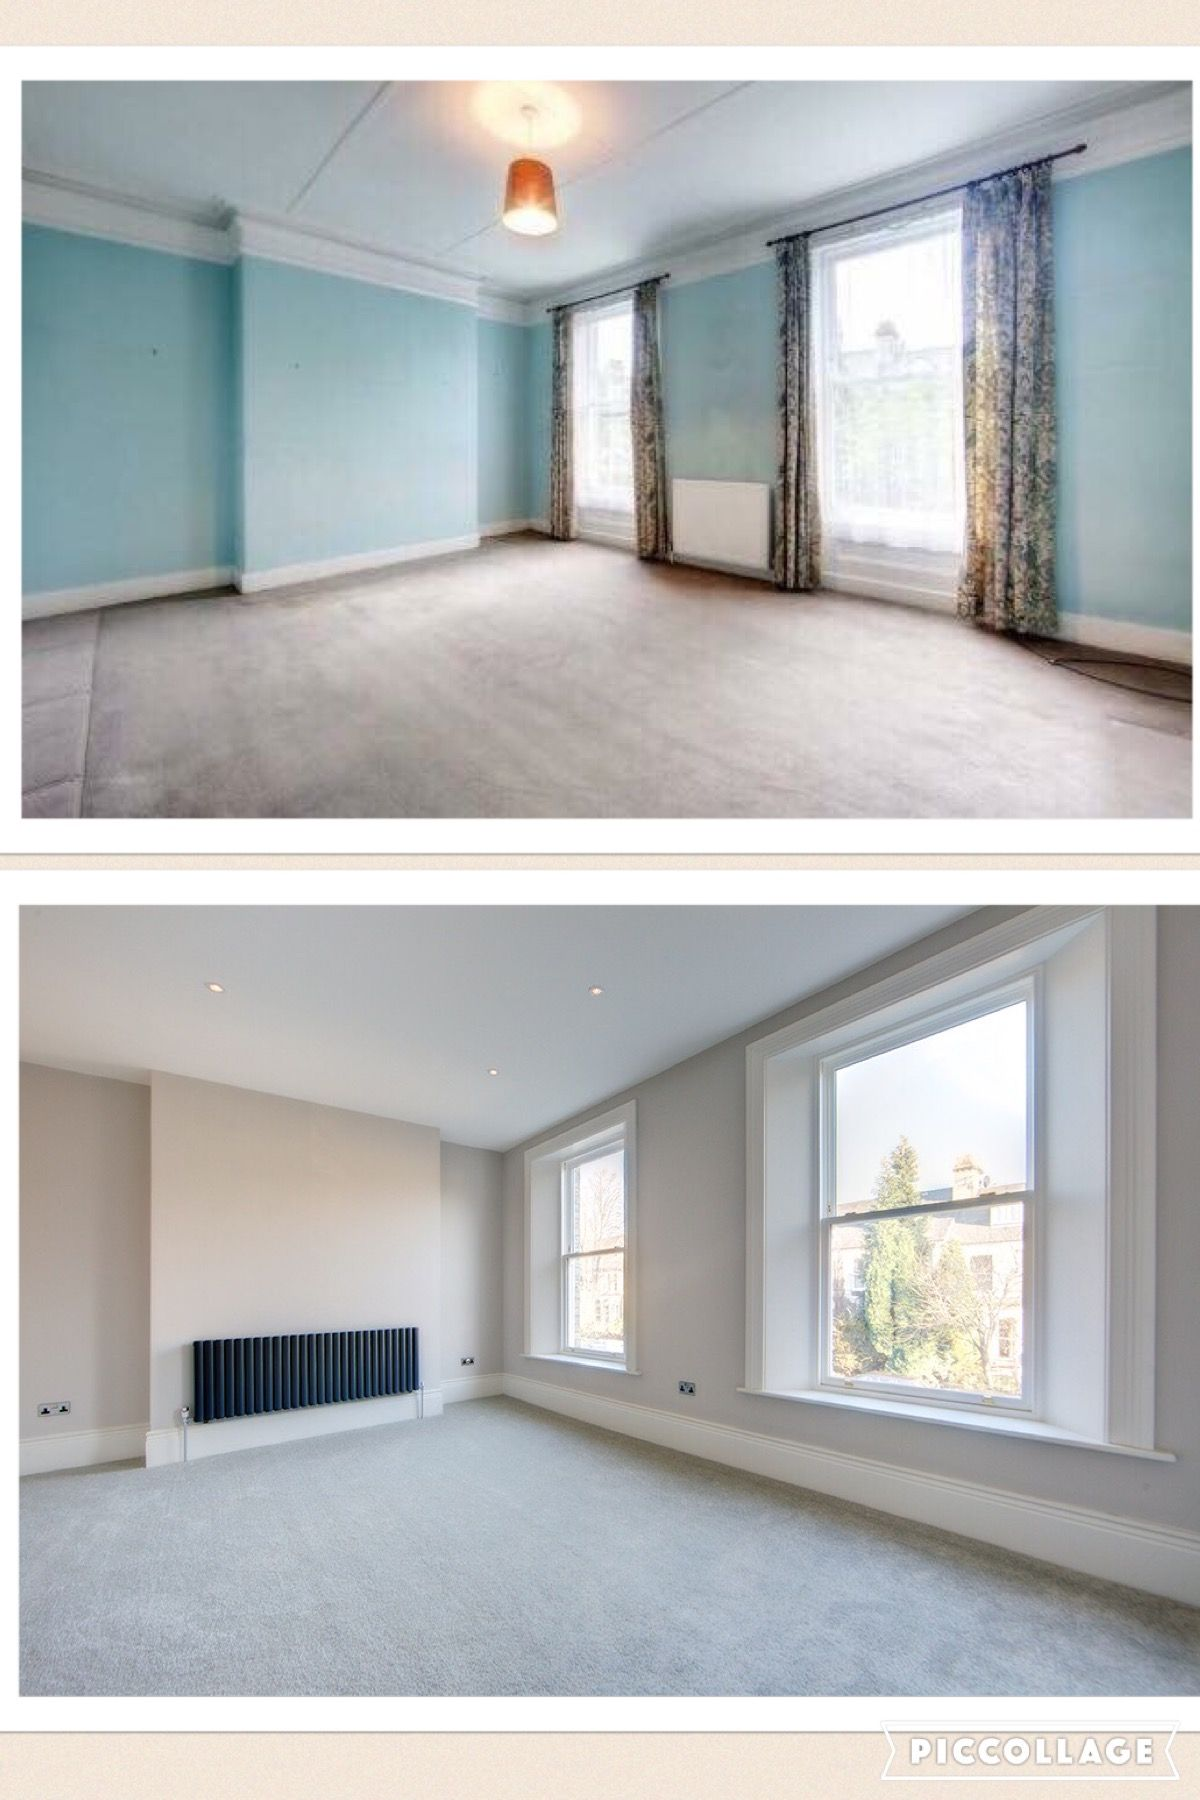 Lovely Victorian Terrace Renovation First Floor Master Bedroom With Internal  Insulation Of Front Wall With New Double Glazed Timber Frame Sash Windows  And ...